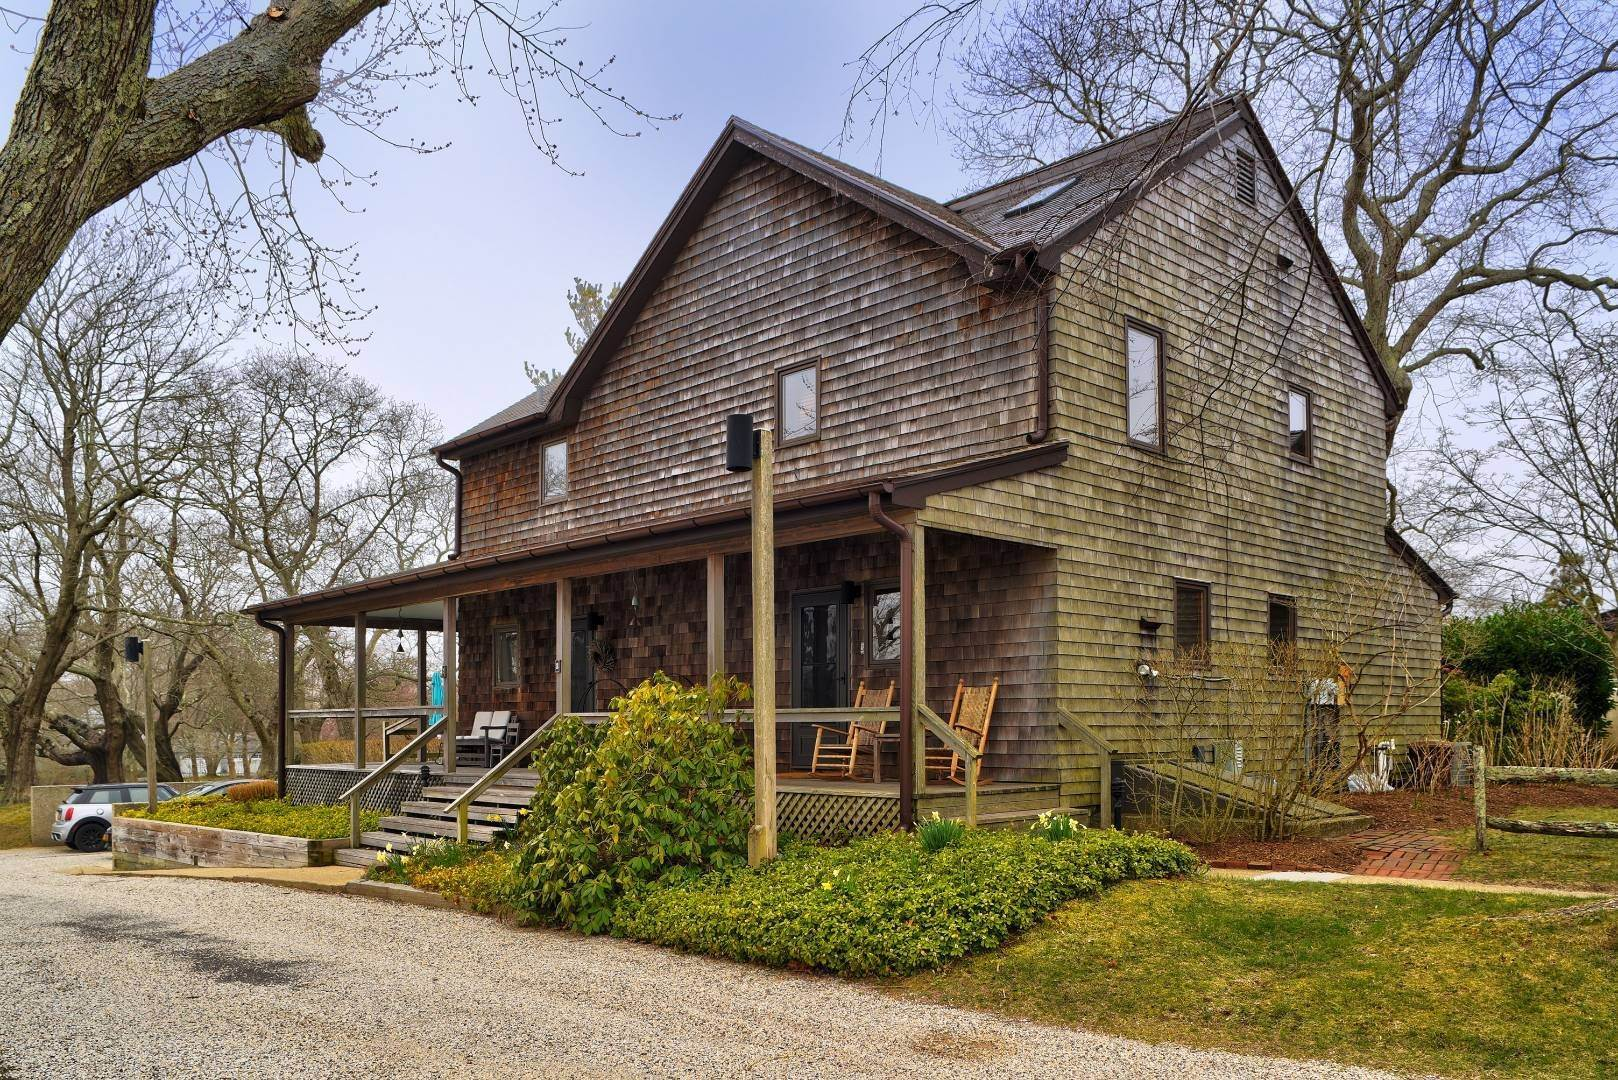 Co-op Properties for Sale at East Hampton Dune Alpin Co-Op For Sale 3 Shetland Court, East Hampton, NY 11937